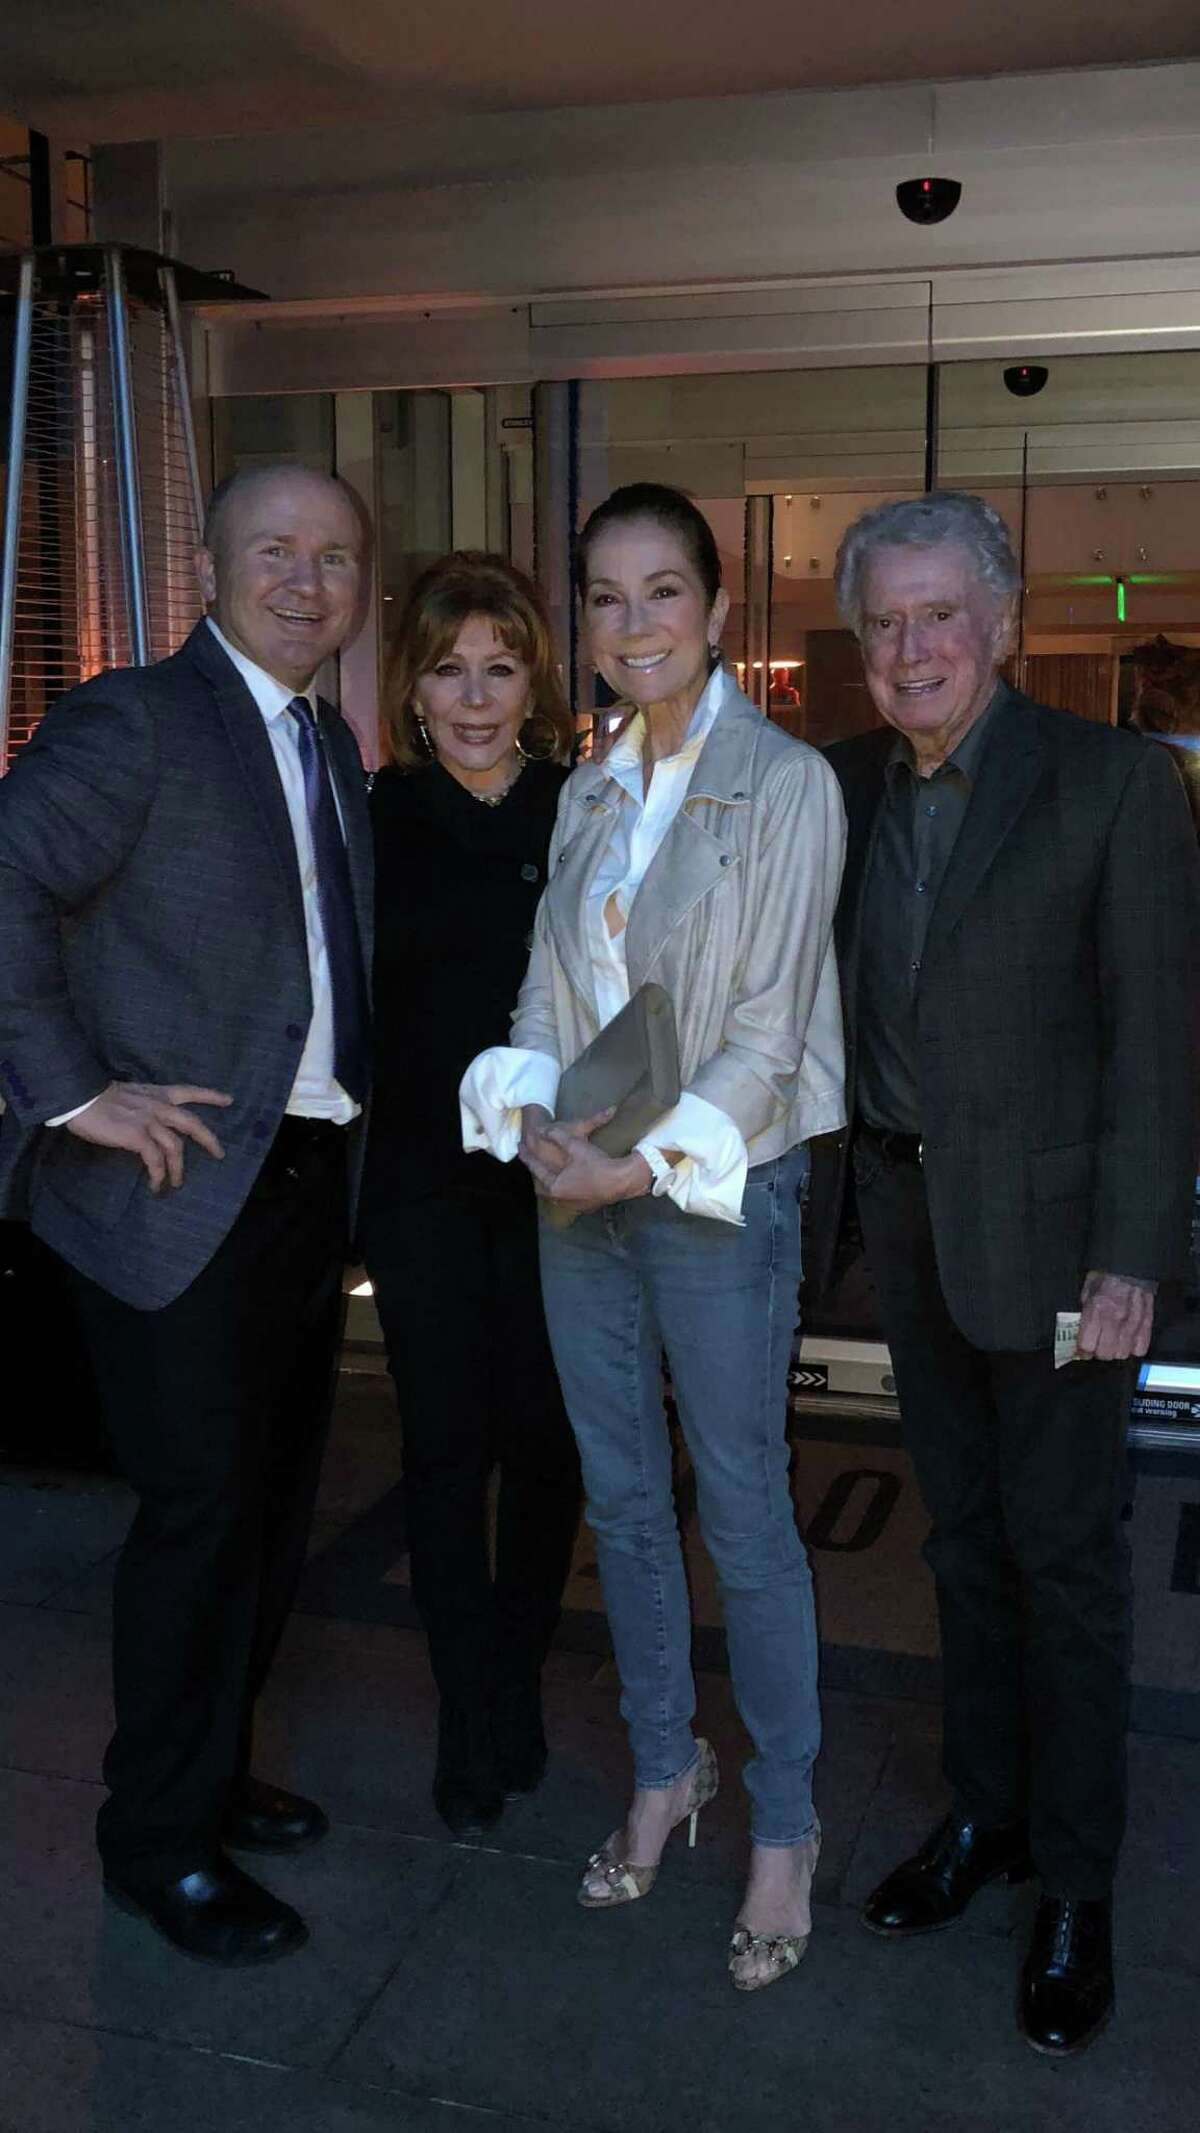 JHOUSE Food and Beverage Manager Tony Capasso with TV personalities and Greenwich residents Joy Philbin, Kathie Lee Gifford and Regis Philbin at the JHOUSE in Riverside on Saturday, Oct. 20.